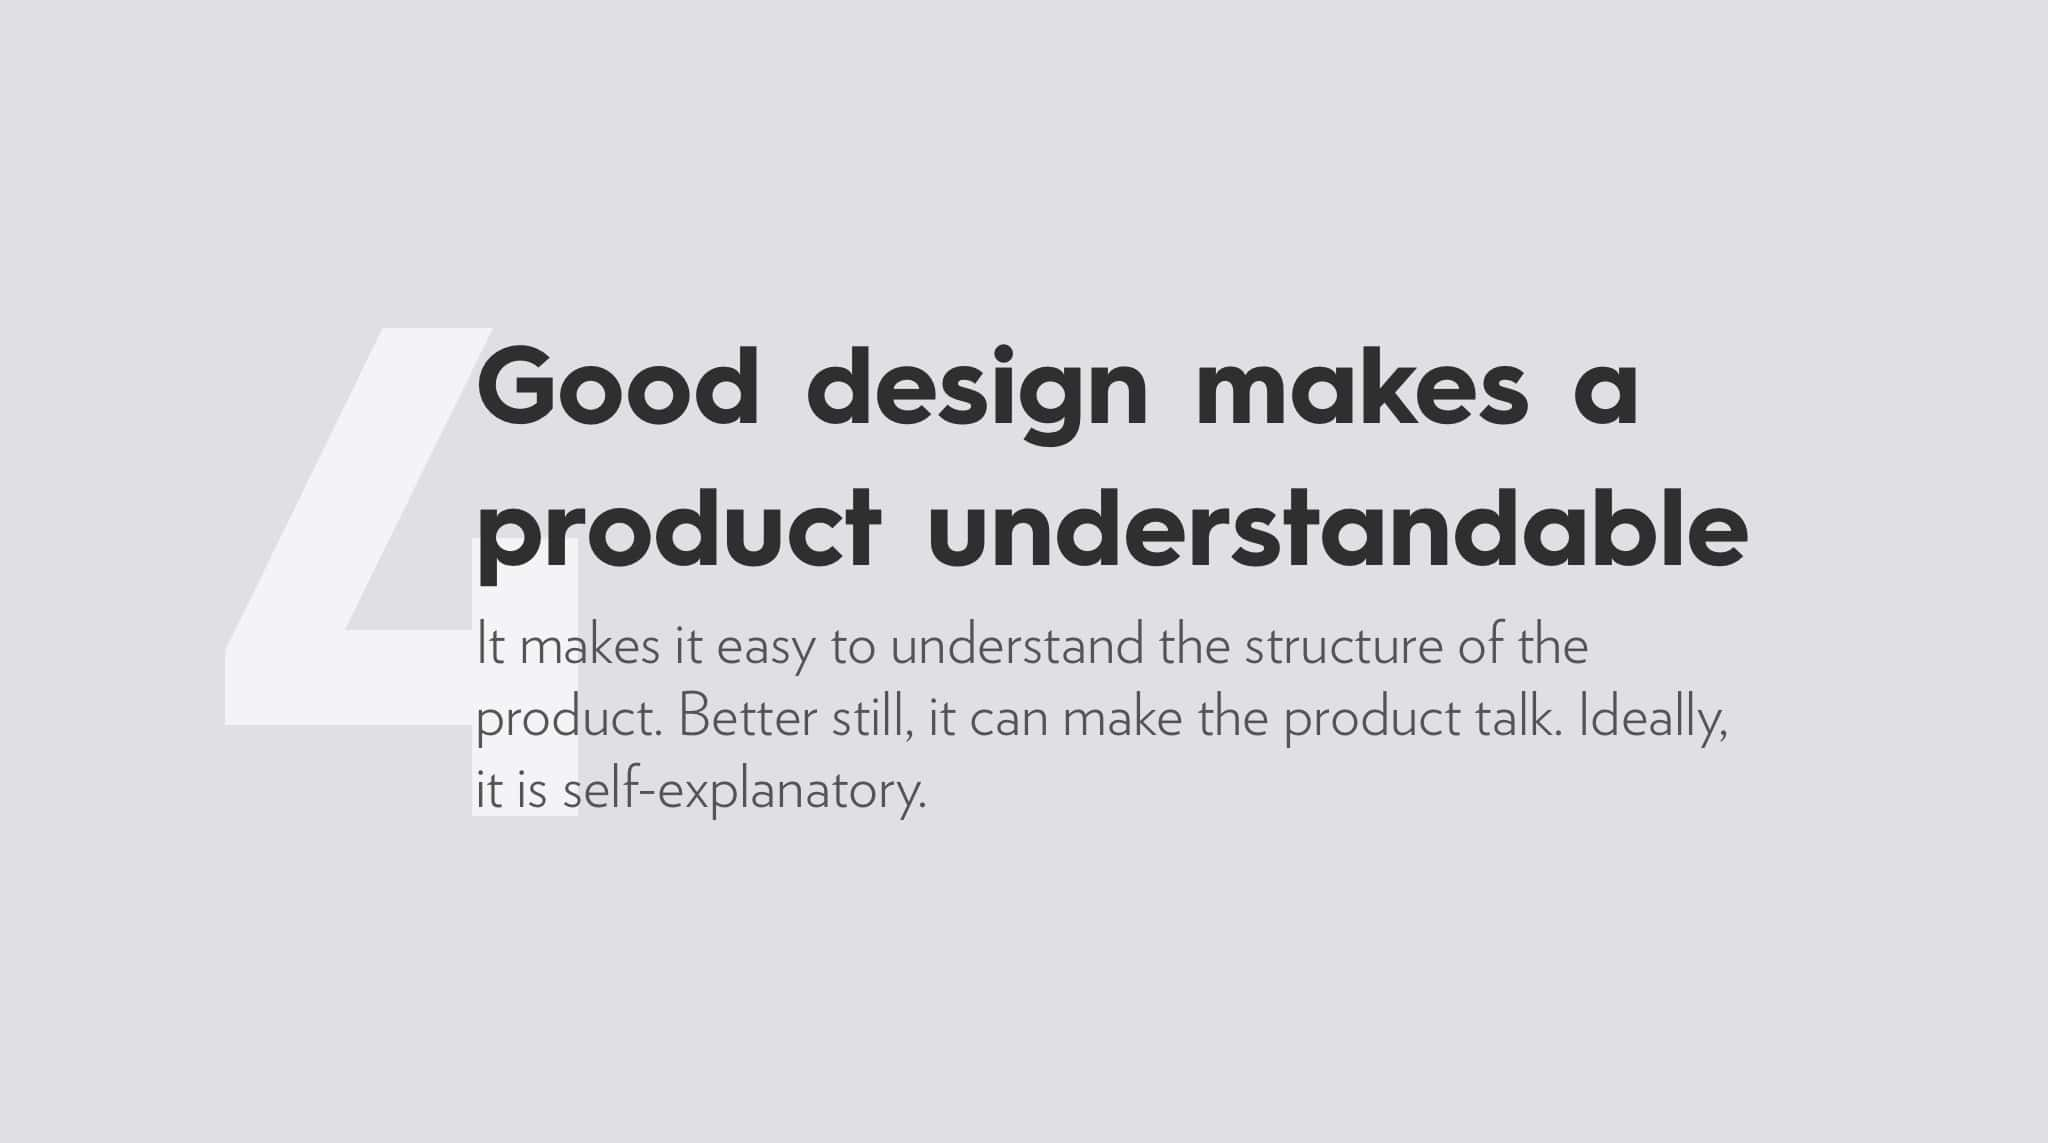 Ten Principles For Good Design by Dieter Rams, good design makes a product understandable.